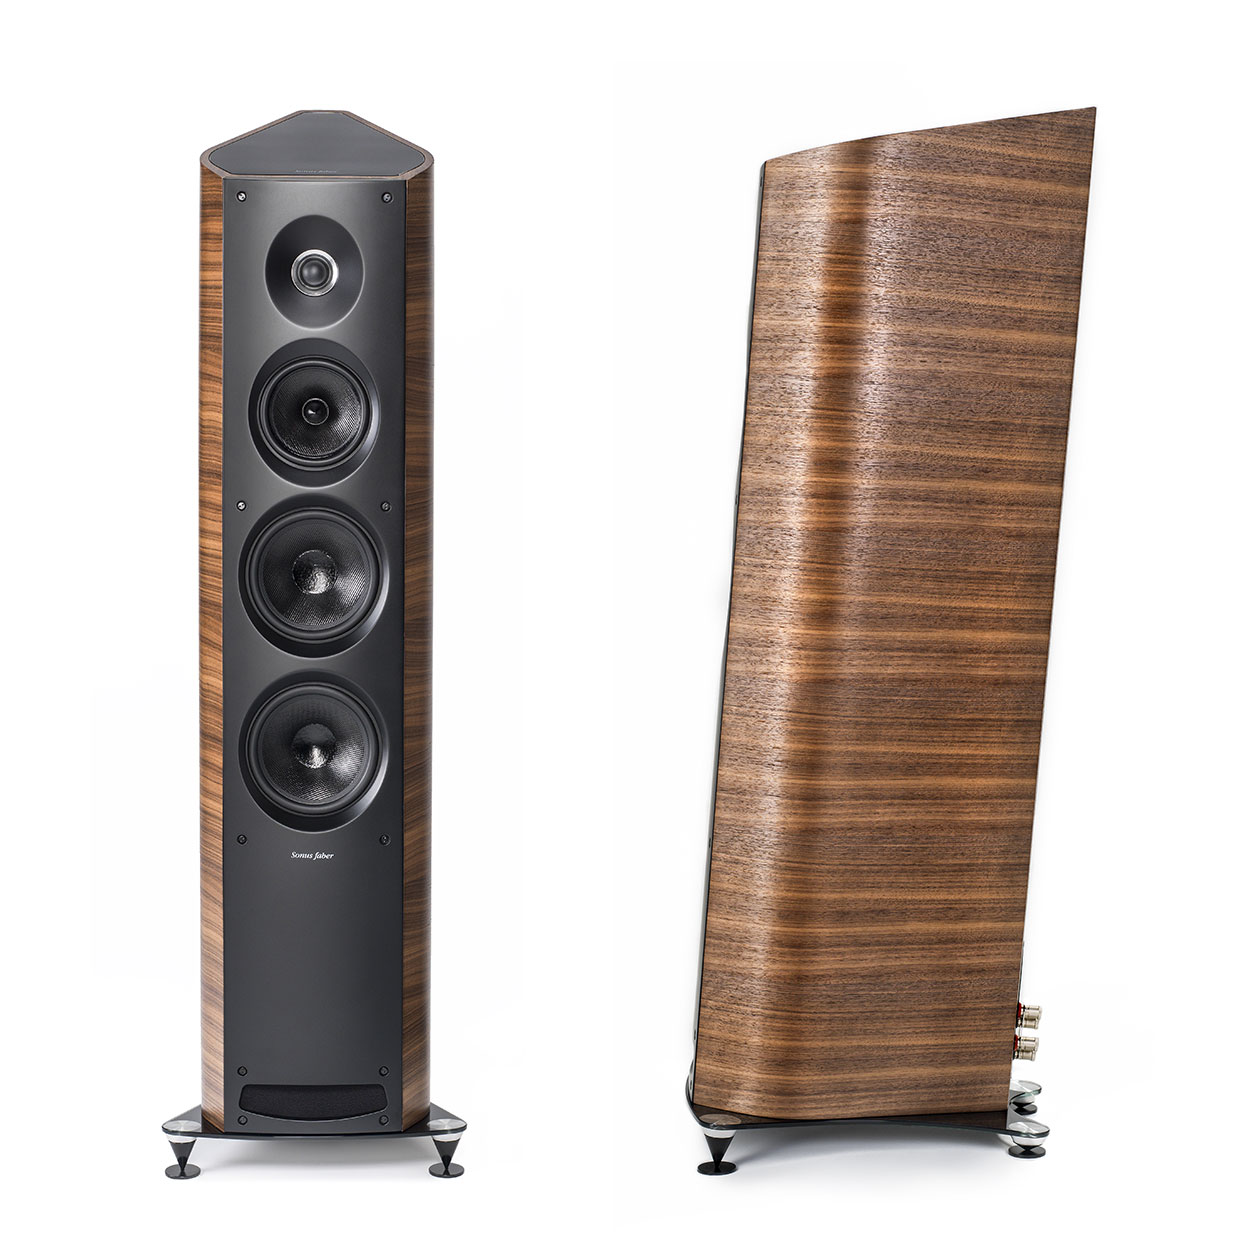 Venere 3 0 audio systems high quality professional speakers